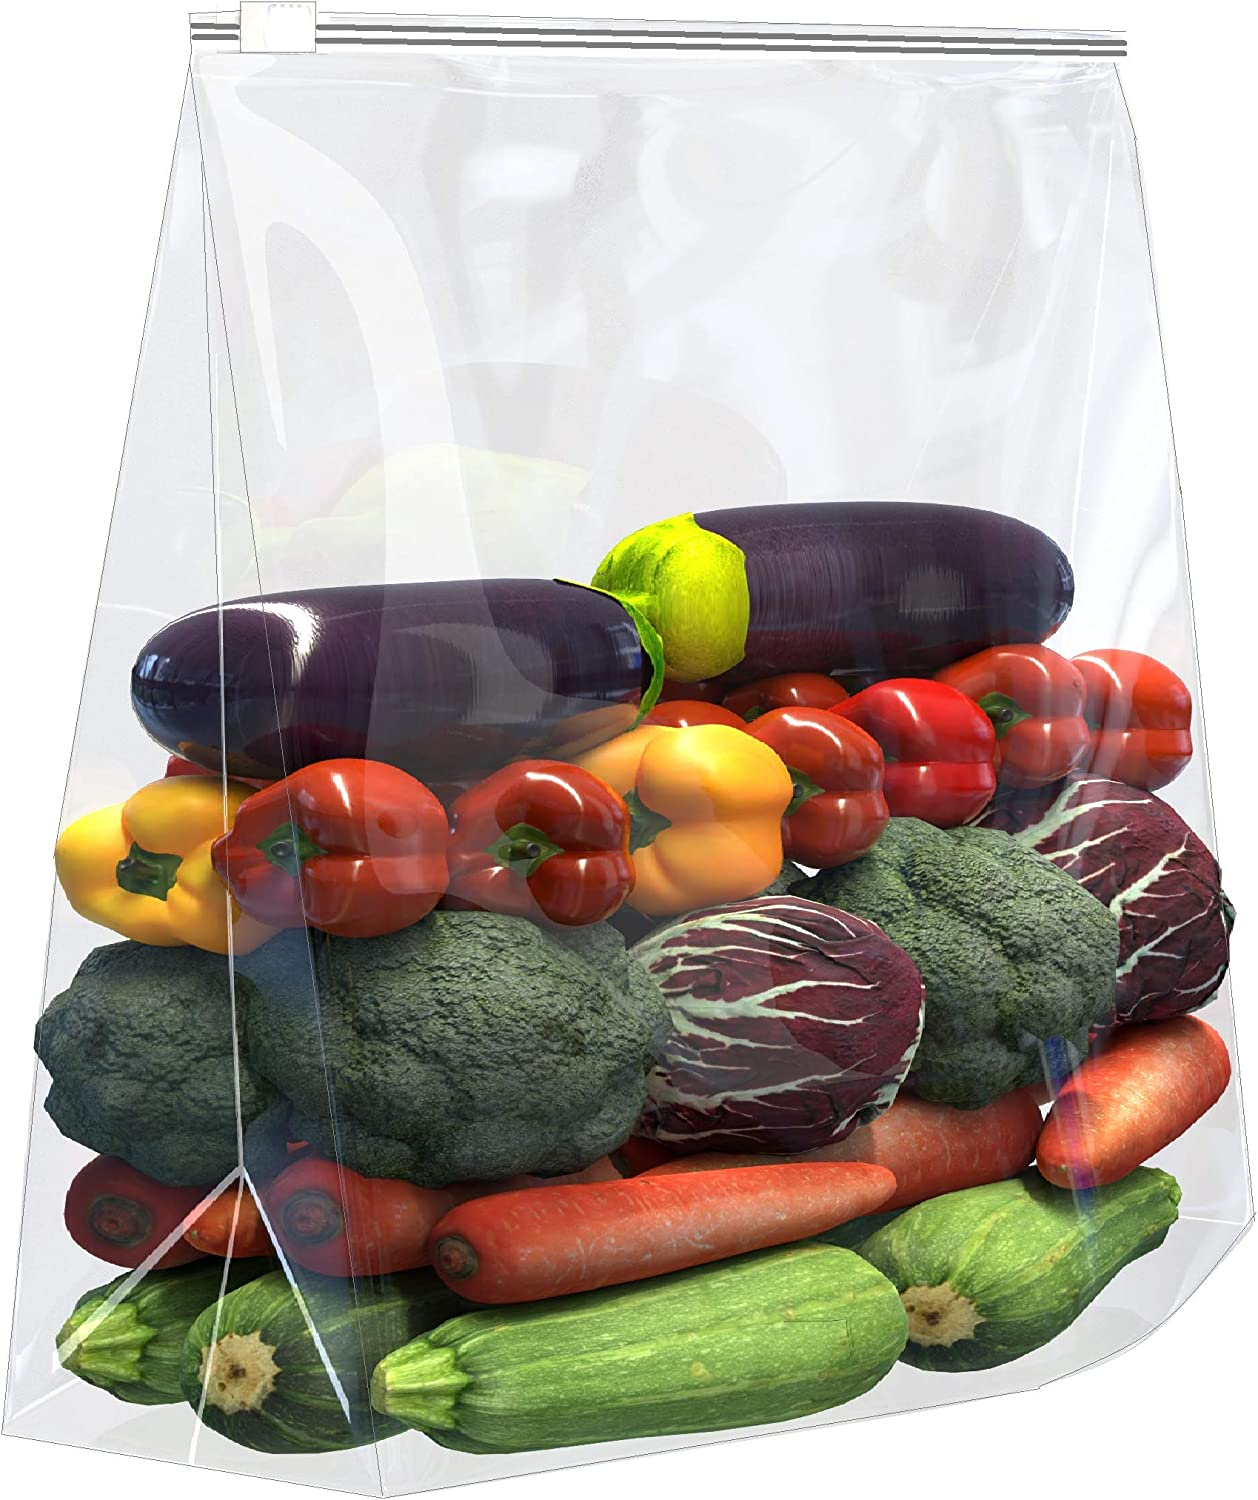 [ 20 COUNT ] -3.5 MILL - super big bag x- large thick plastic bag - EXPANDABLE BOTTOM - SLIDER TOP - 5 GALLON SIZE - 3.5 MILL - for food, freezer, travel, organizaton, storage, moving, etc,